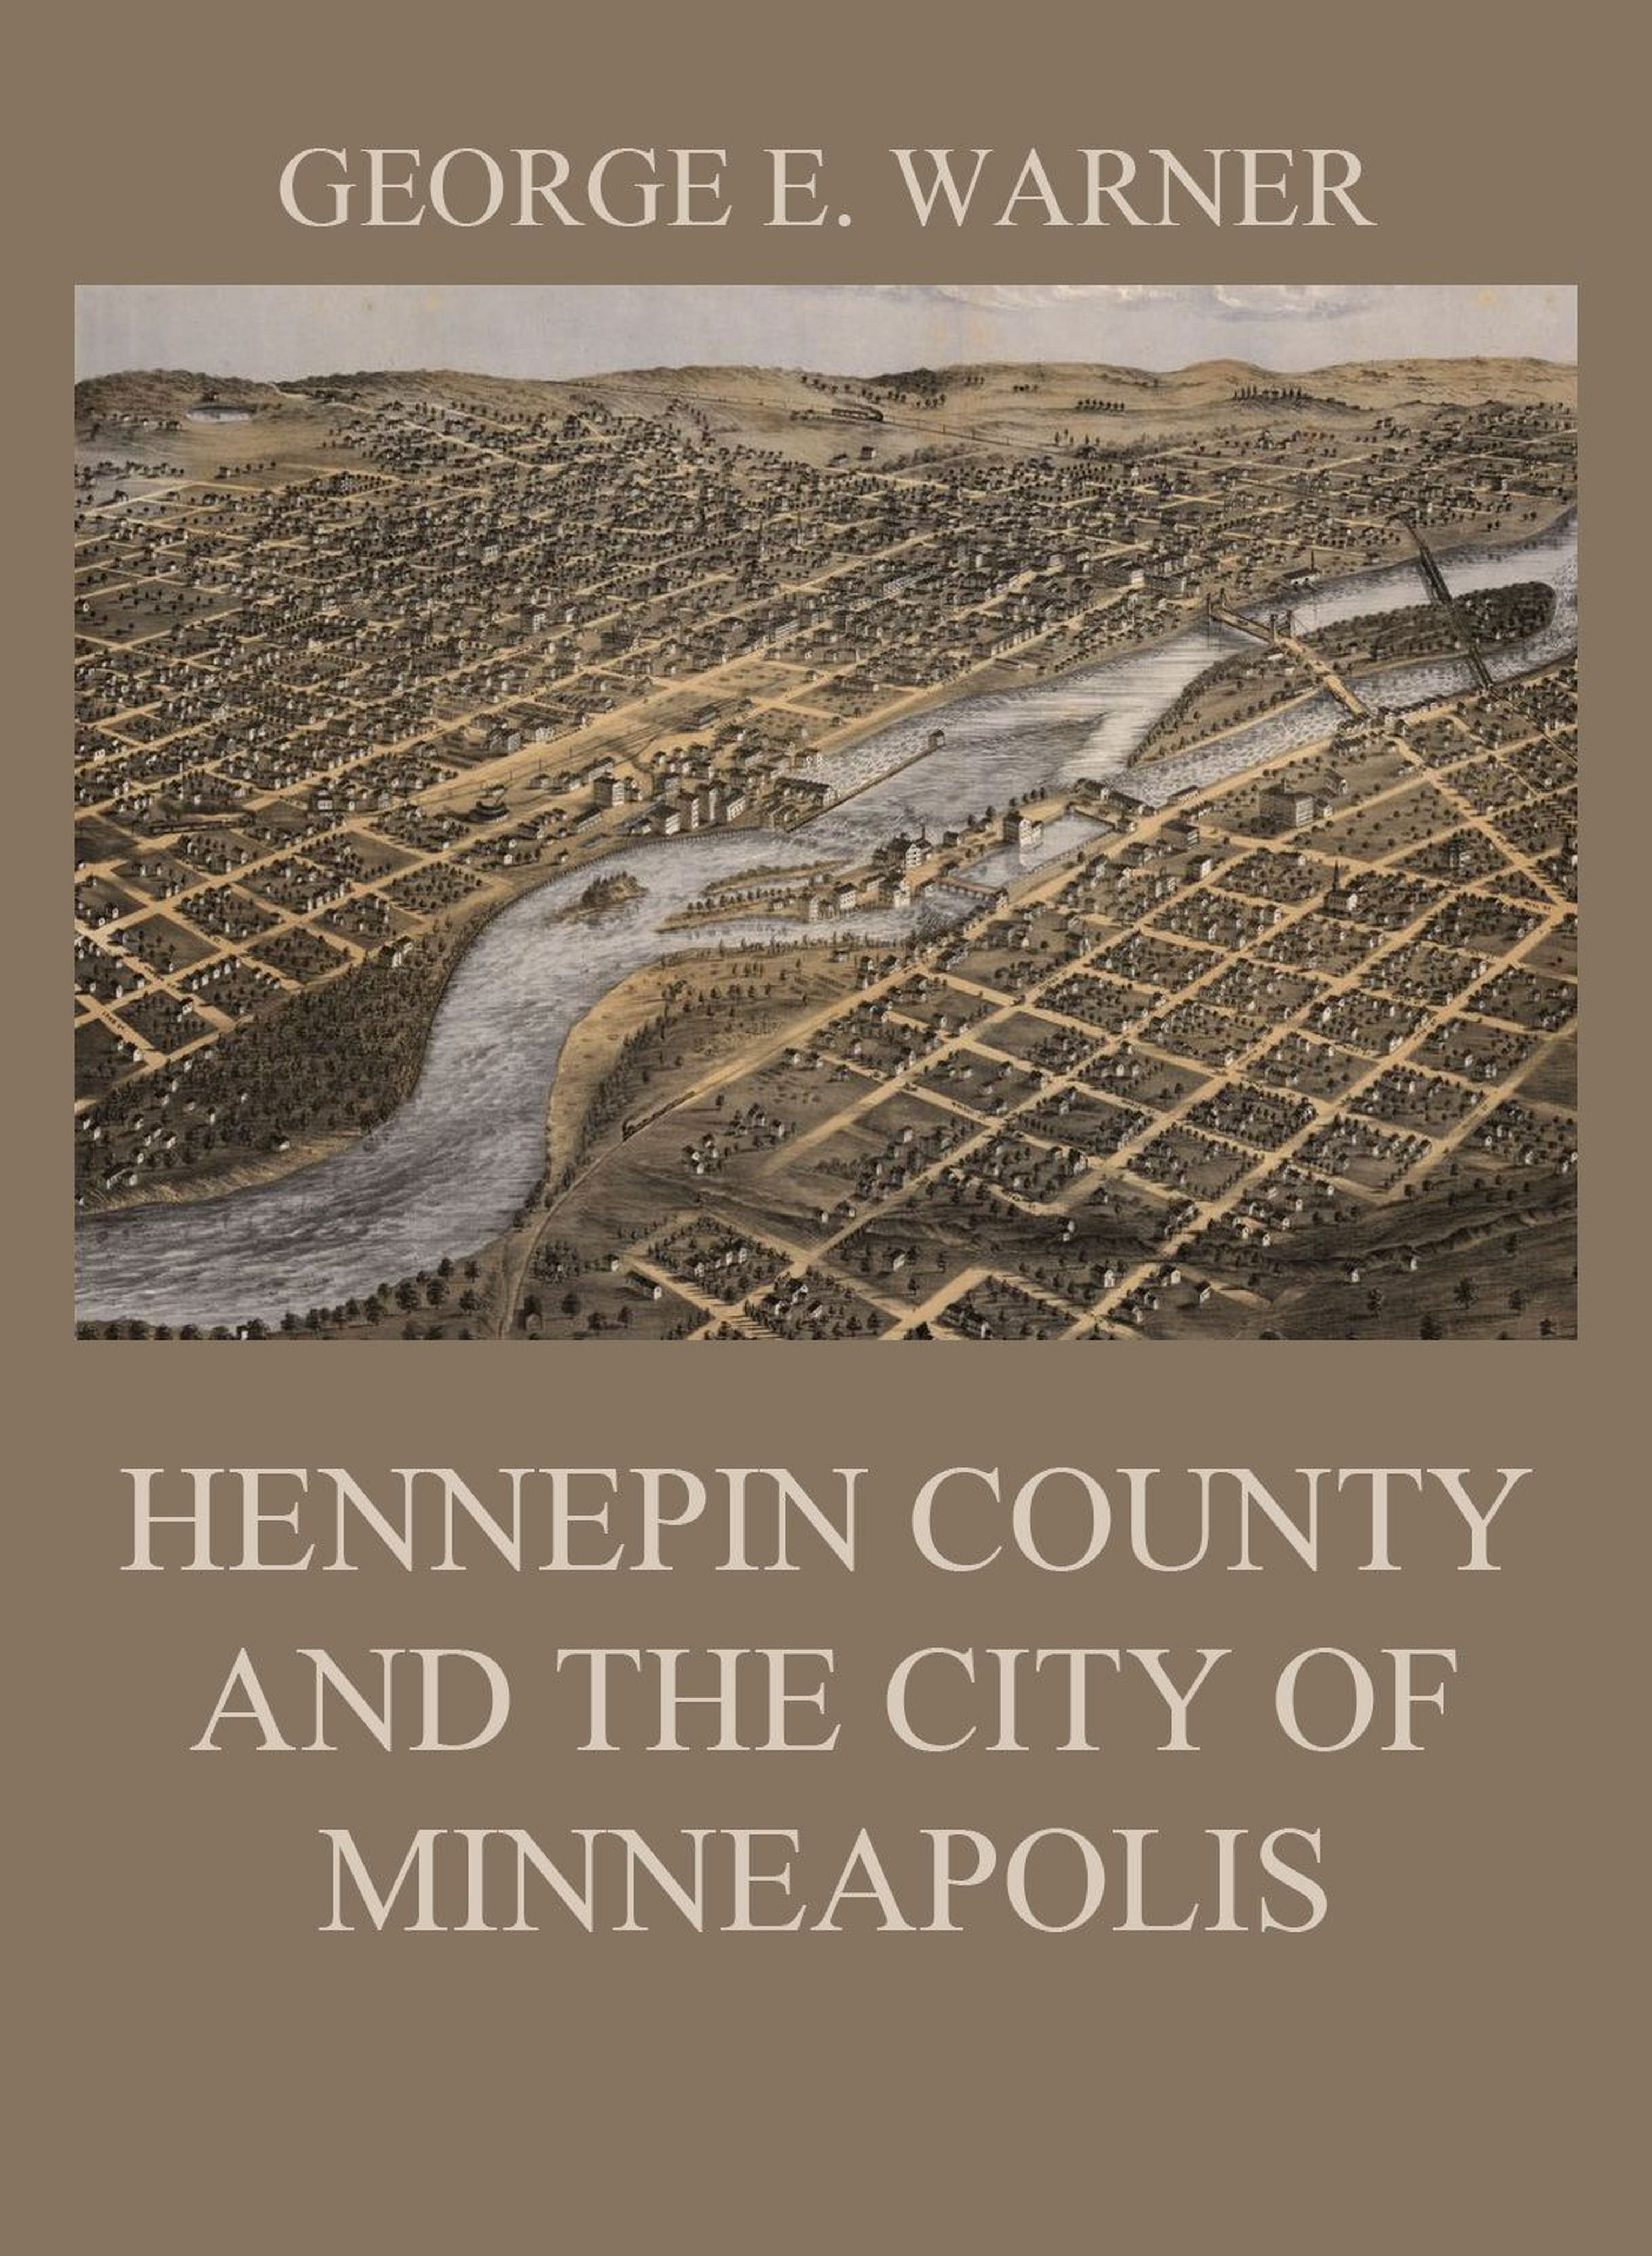 J. Fletcher Williams Hennepin County and the City of Minneapolis muscatine muscatine conchological club the mollusca of muscatine county and vicinity